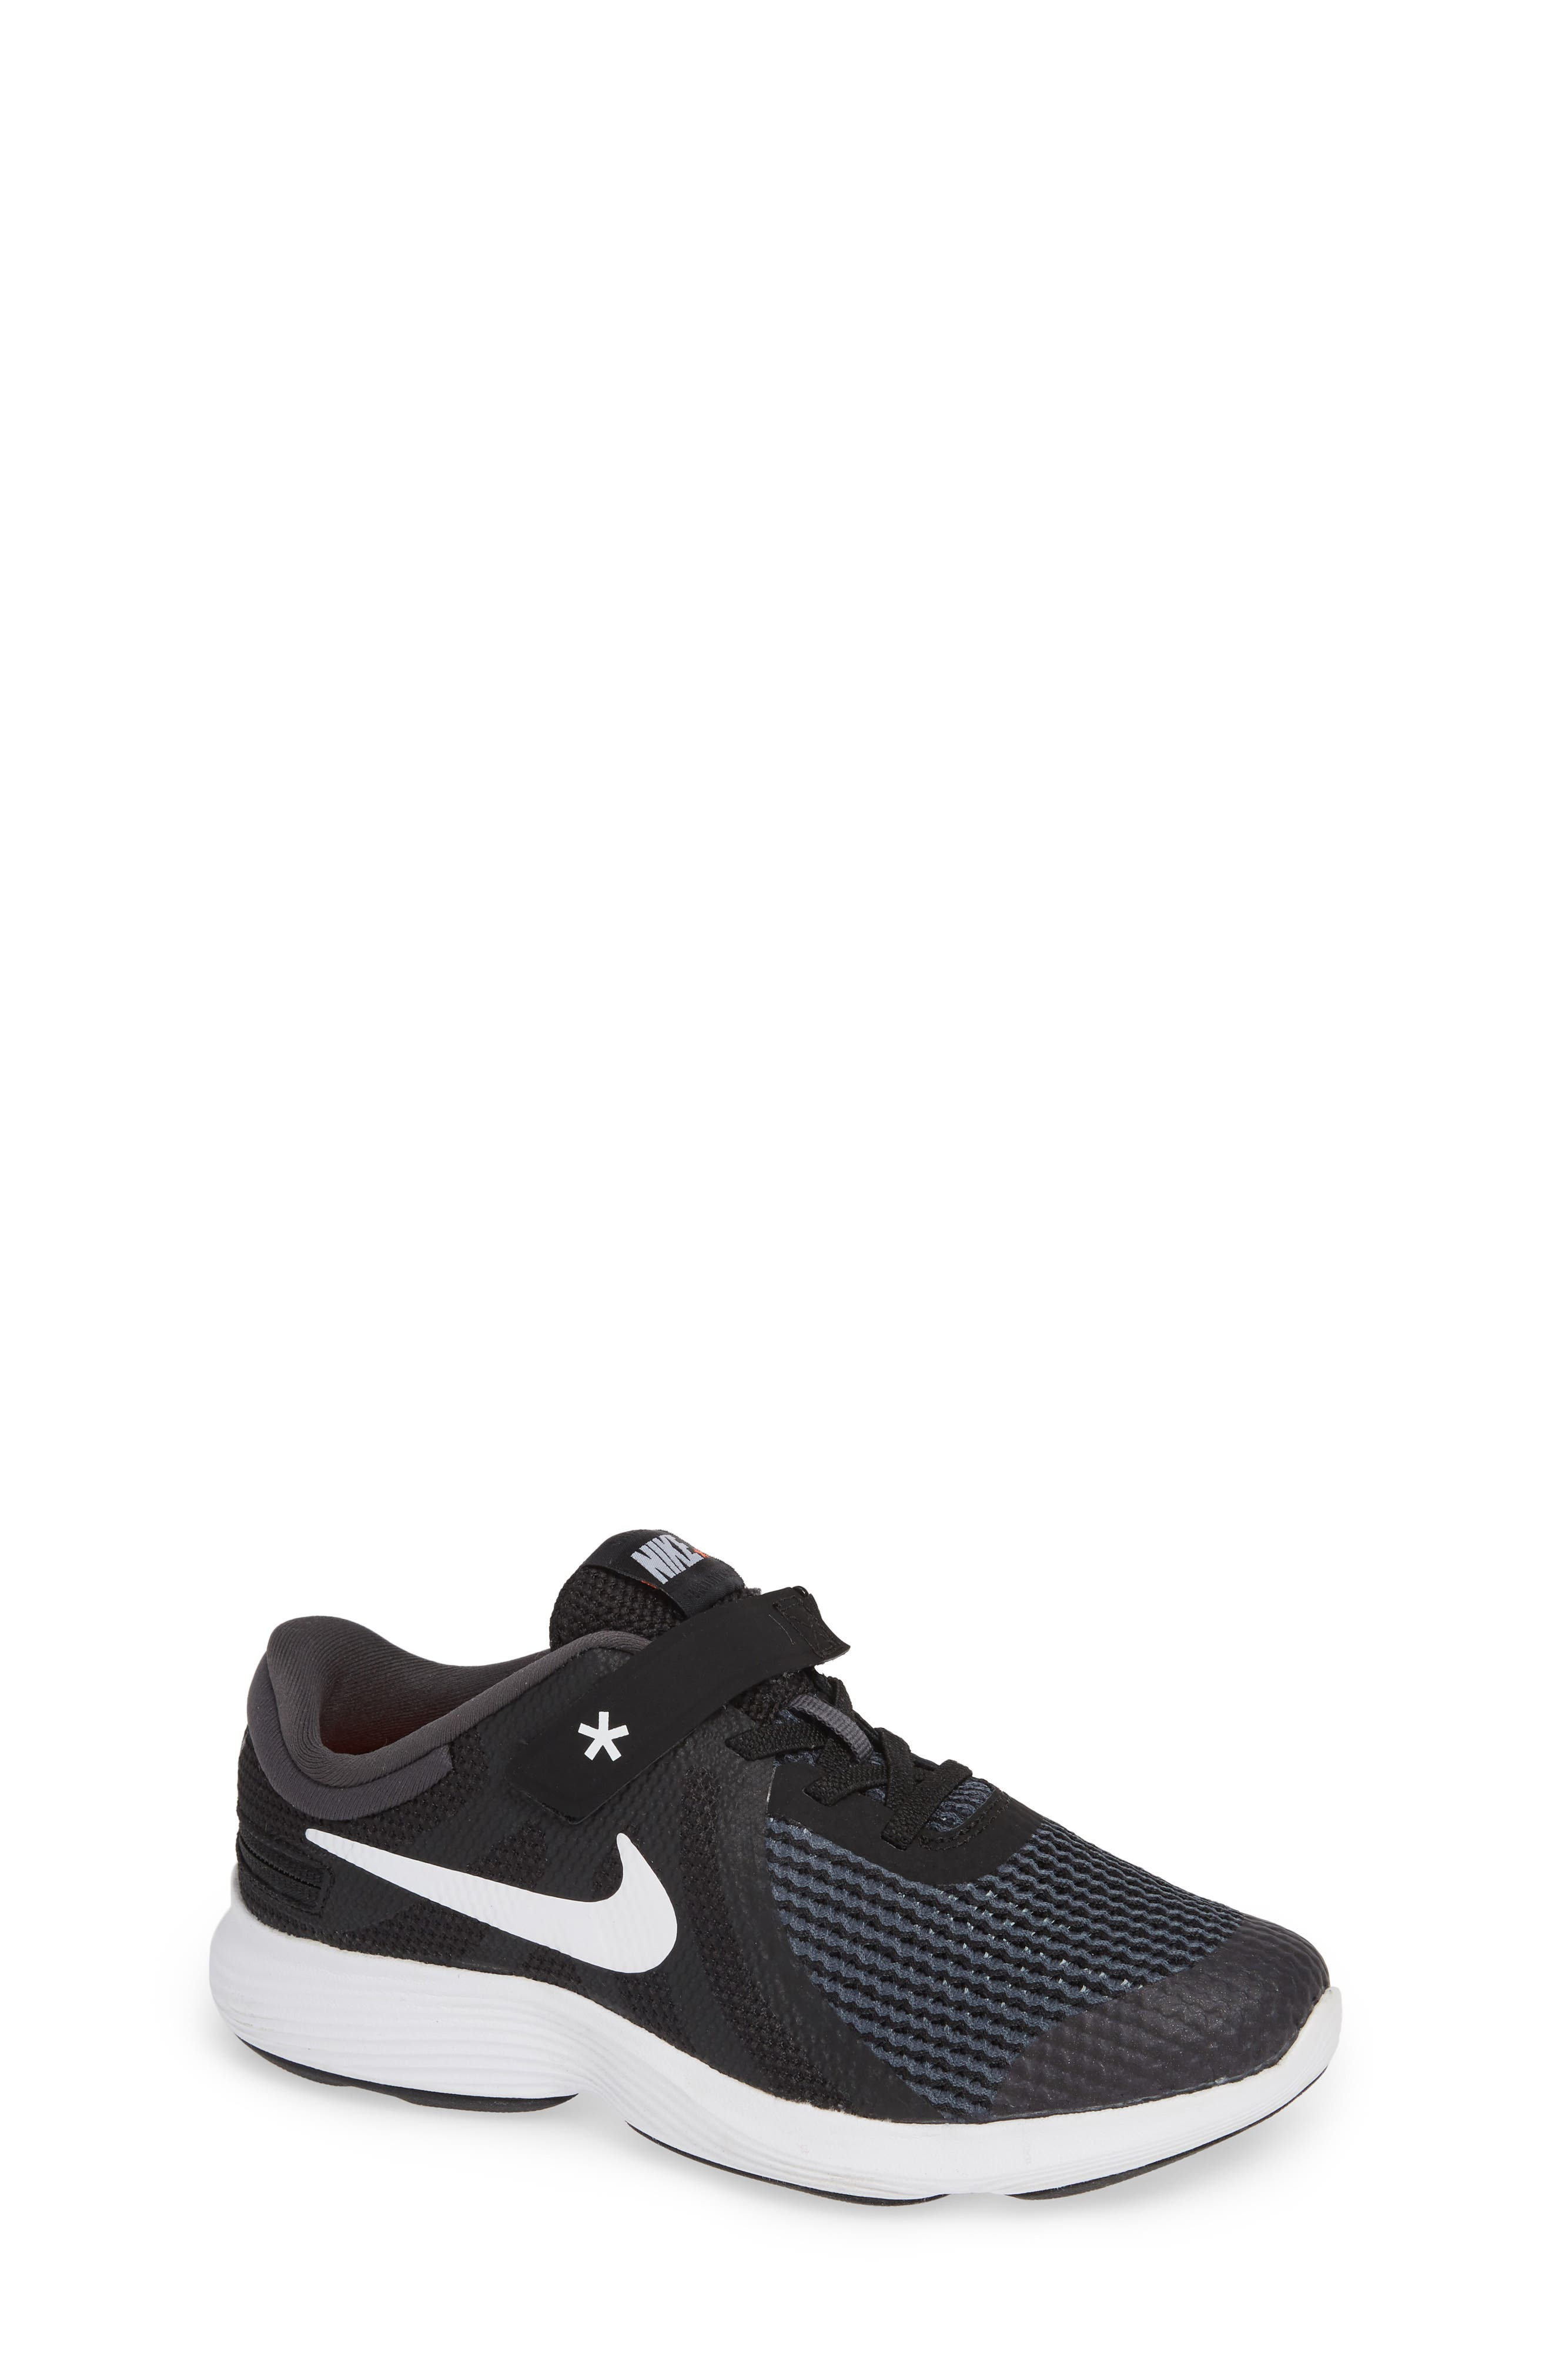 NIKE, Revolution 4 Flyease 4E Sneaker, Main thumbnail 1, color, BLACK ANTHRACITE CRIMSON